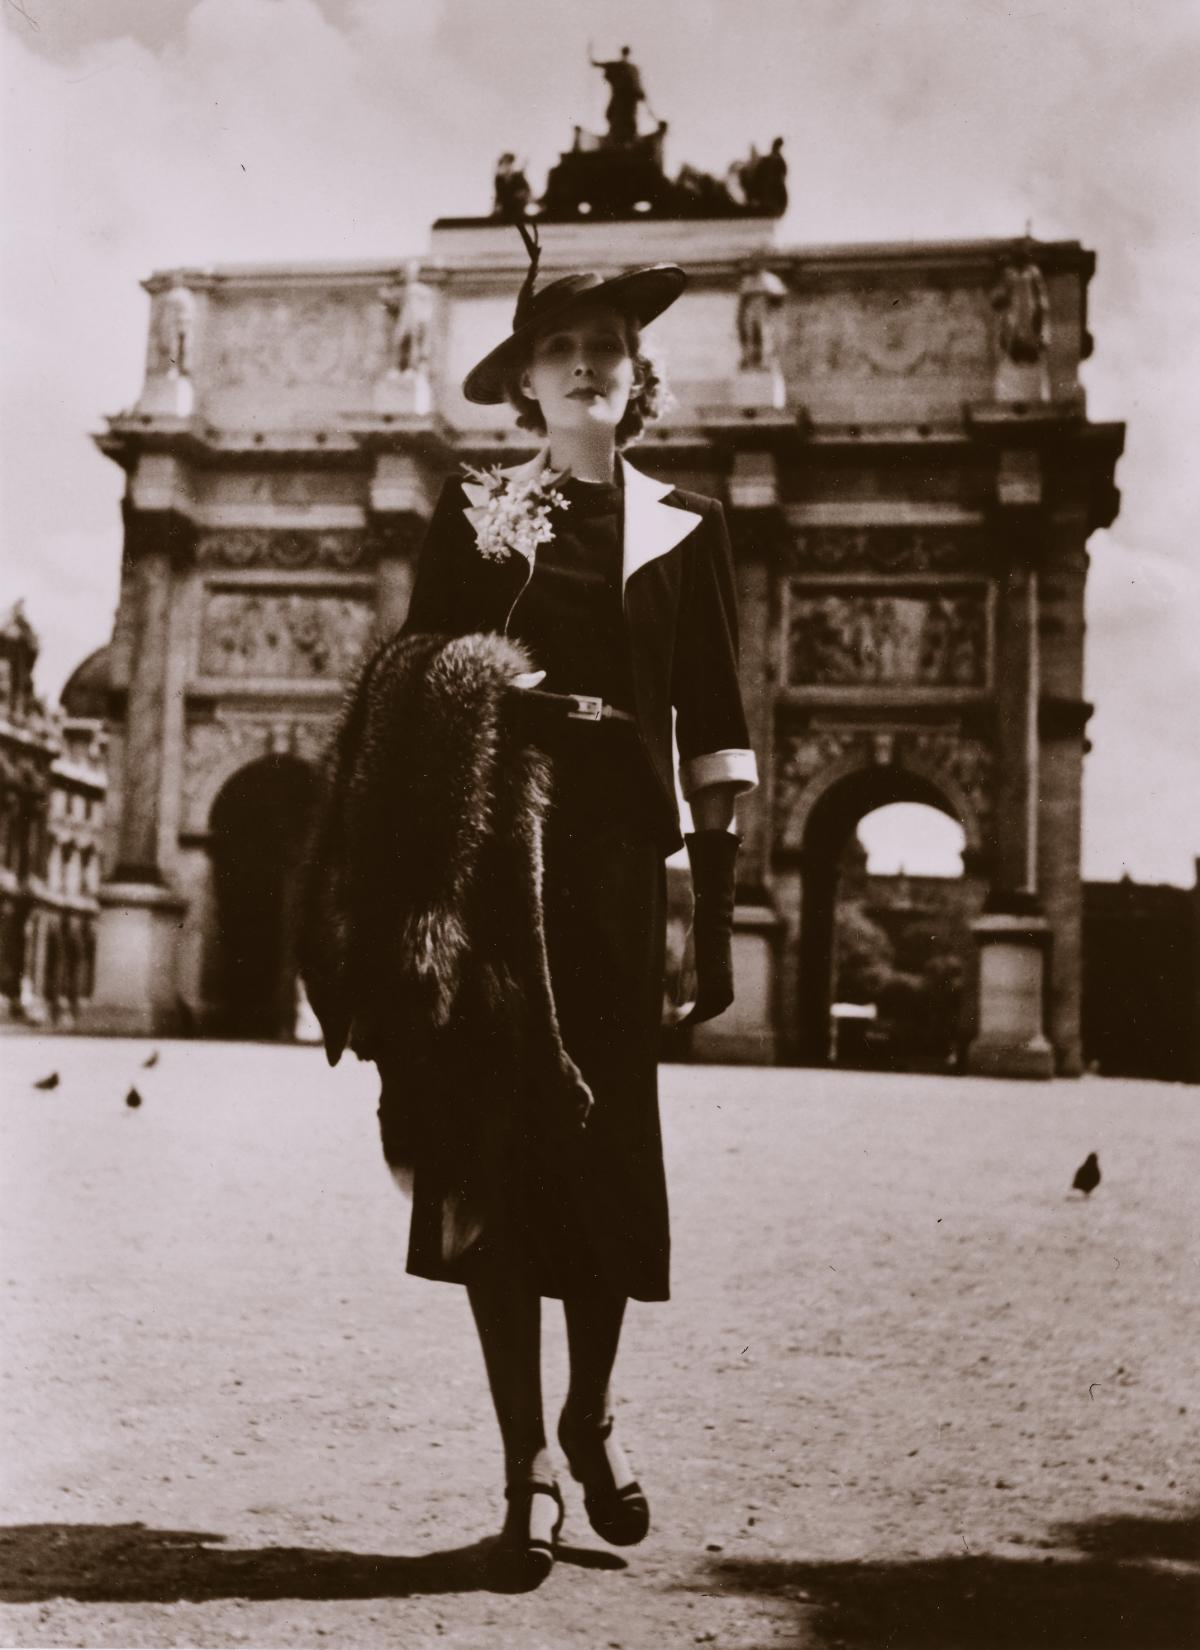 Bedwell, wearing black dress, pumps, black jacket with white collar, and a flat black hat with a feather, carrying a fur stole, in front of the stone Arc